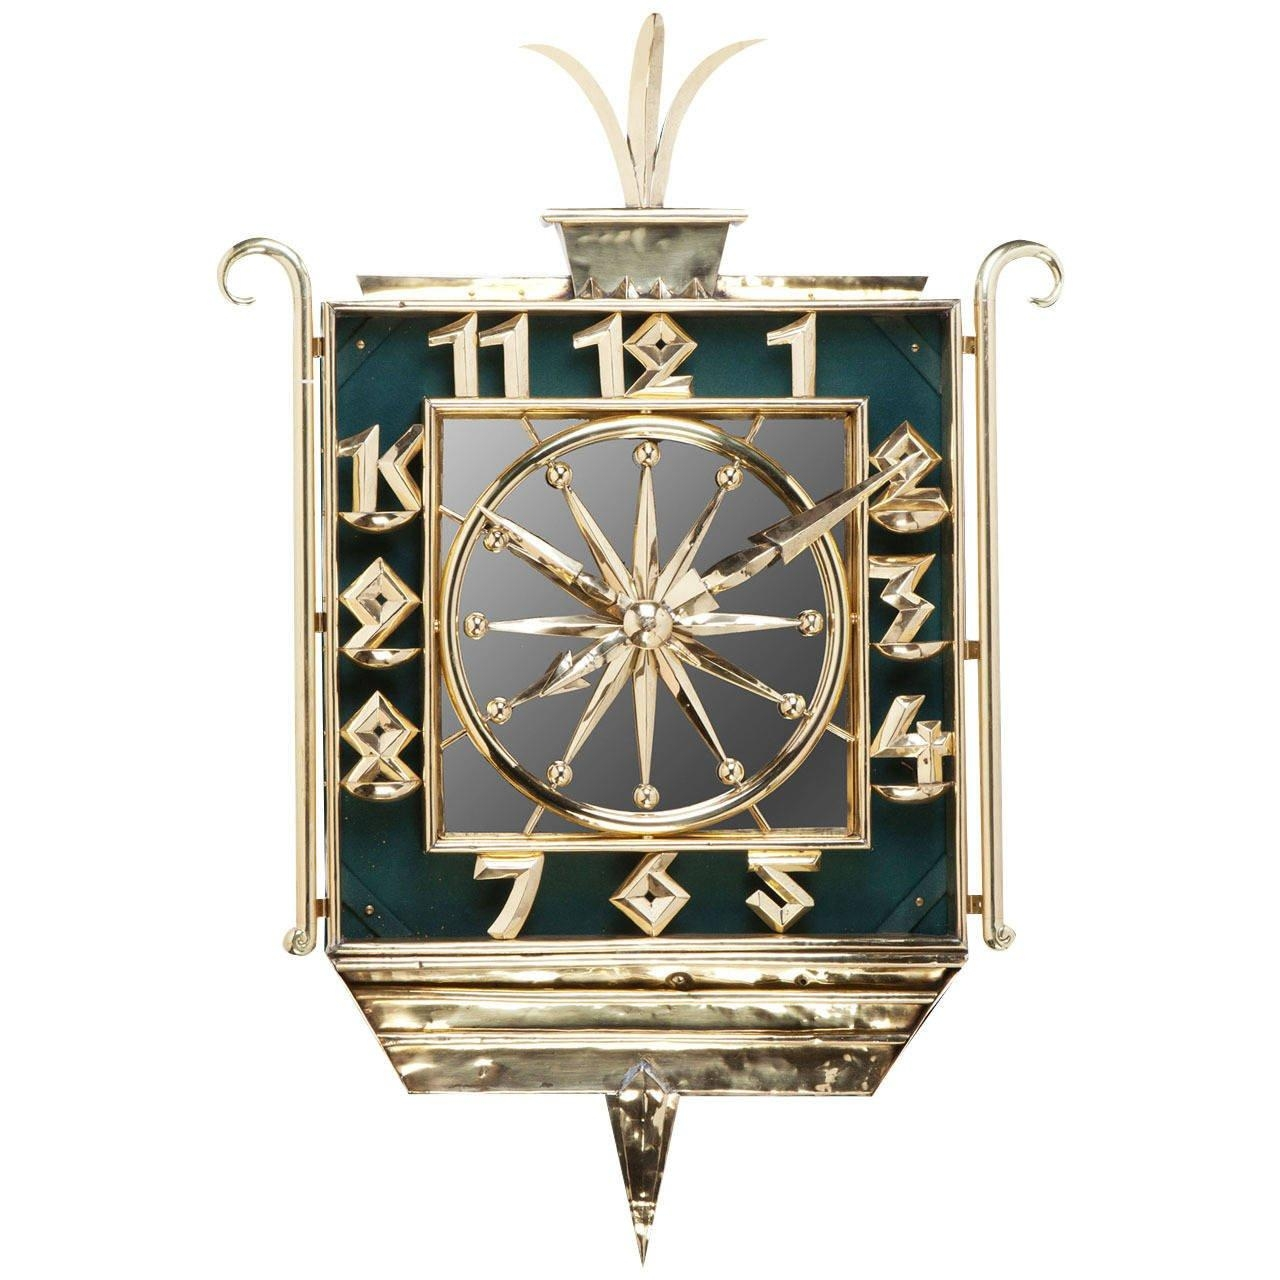 Art Deco Brass And Mirrored Wall Clock At 1Stdibs In Art Deco Wall Clocks (View 6 of 20)